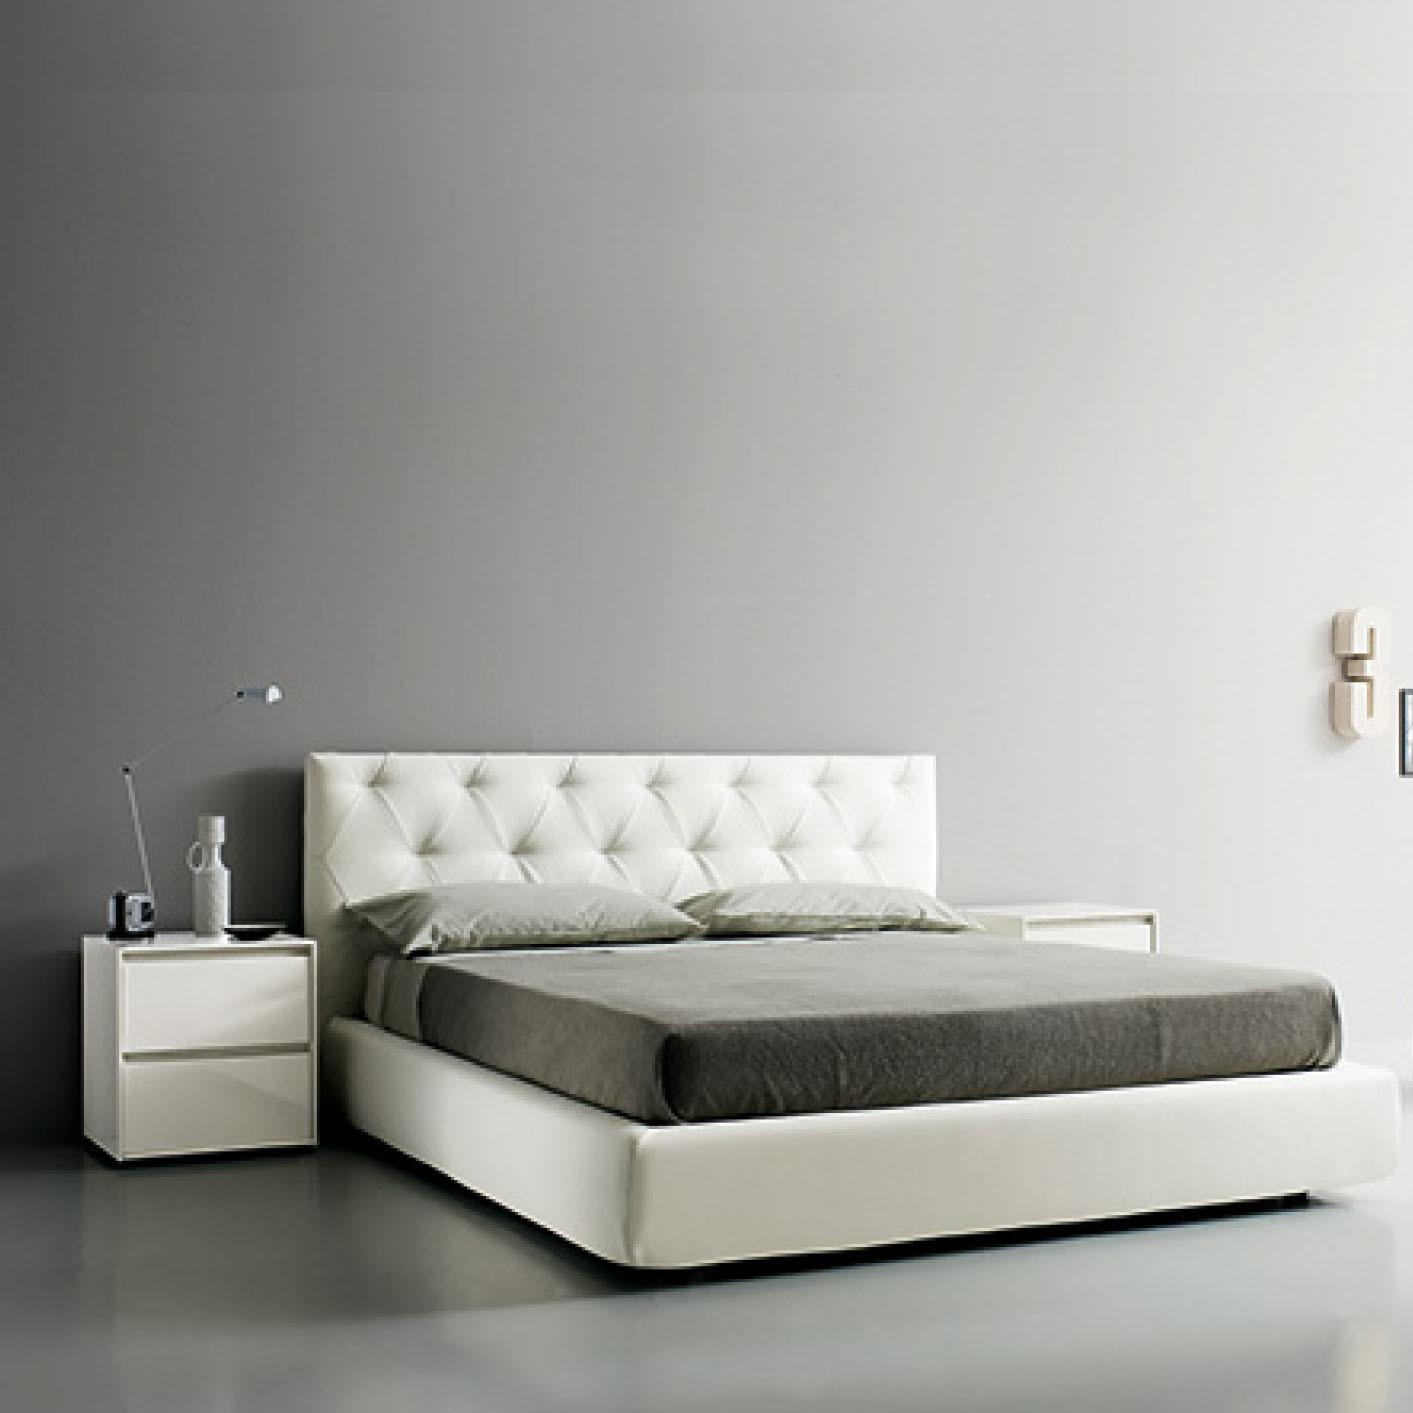 Designer Storage Beds Contemporary Single Bed